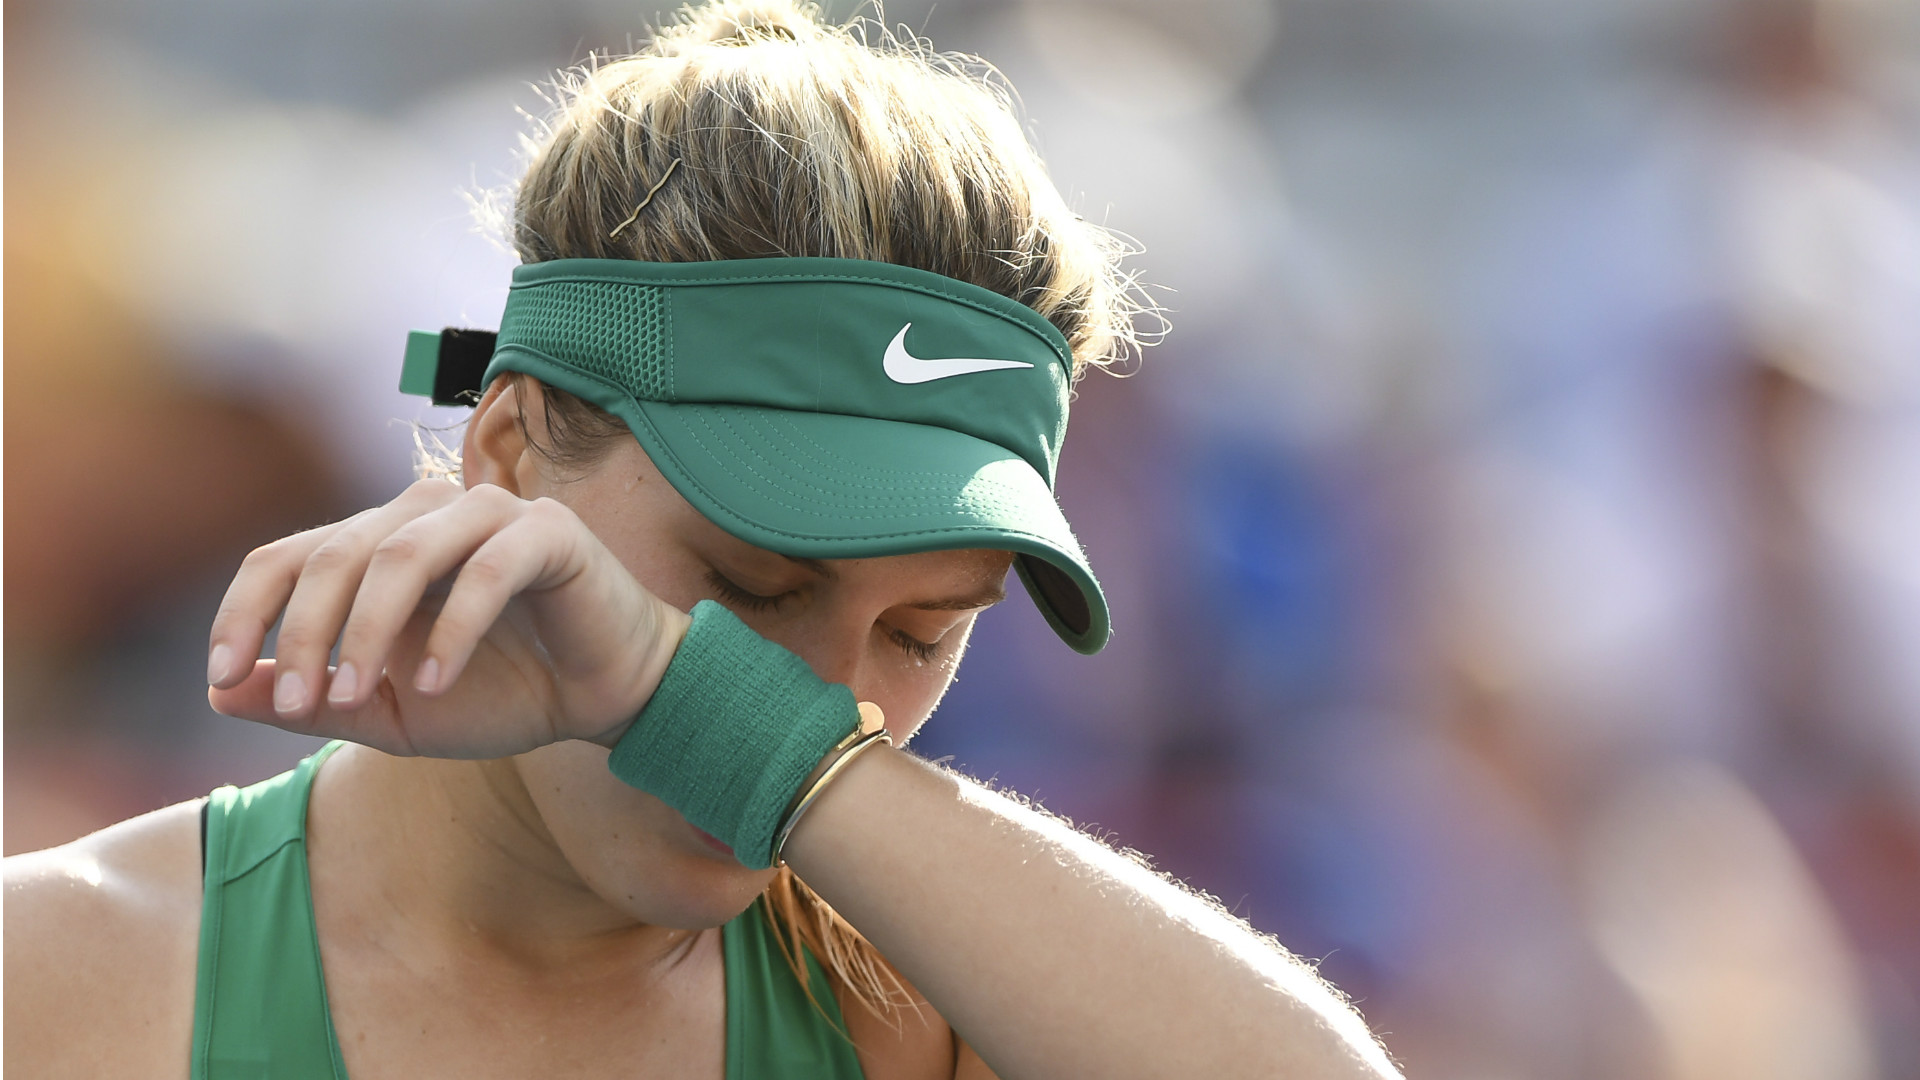 Elina Svitolina lost in semi-finals of tournament in Montreal